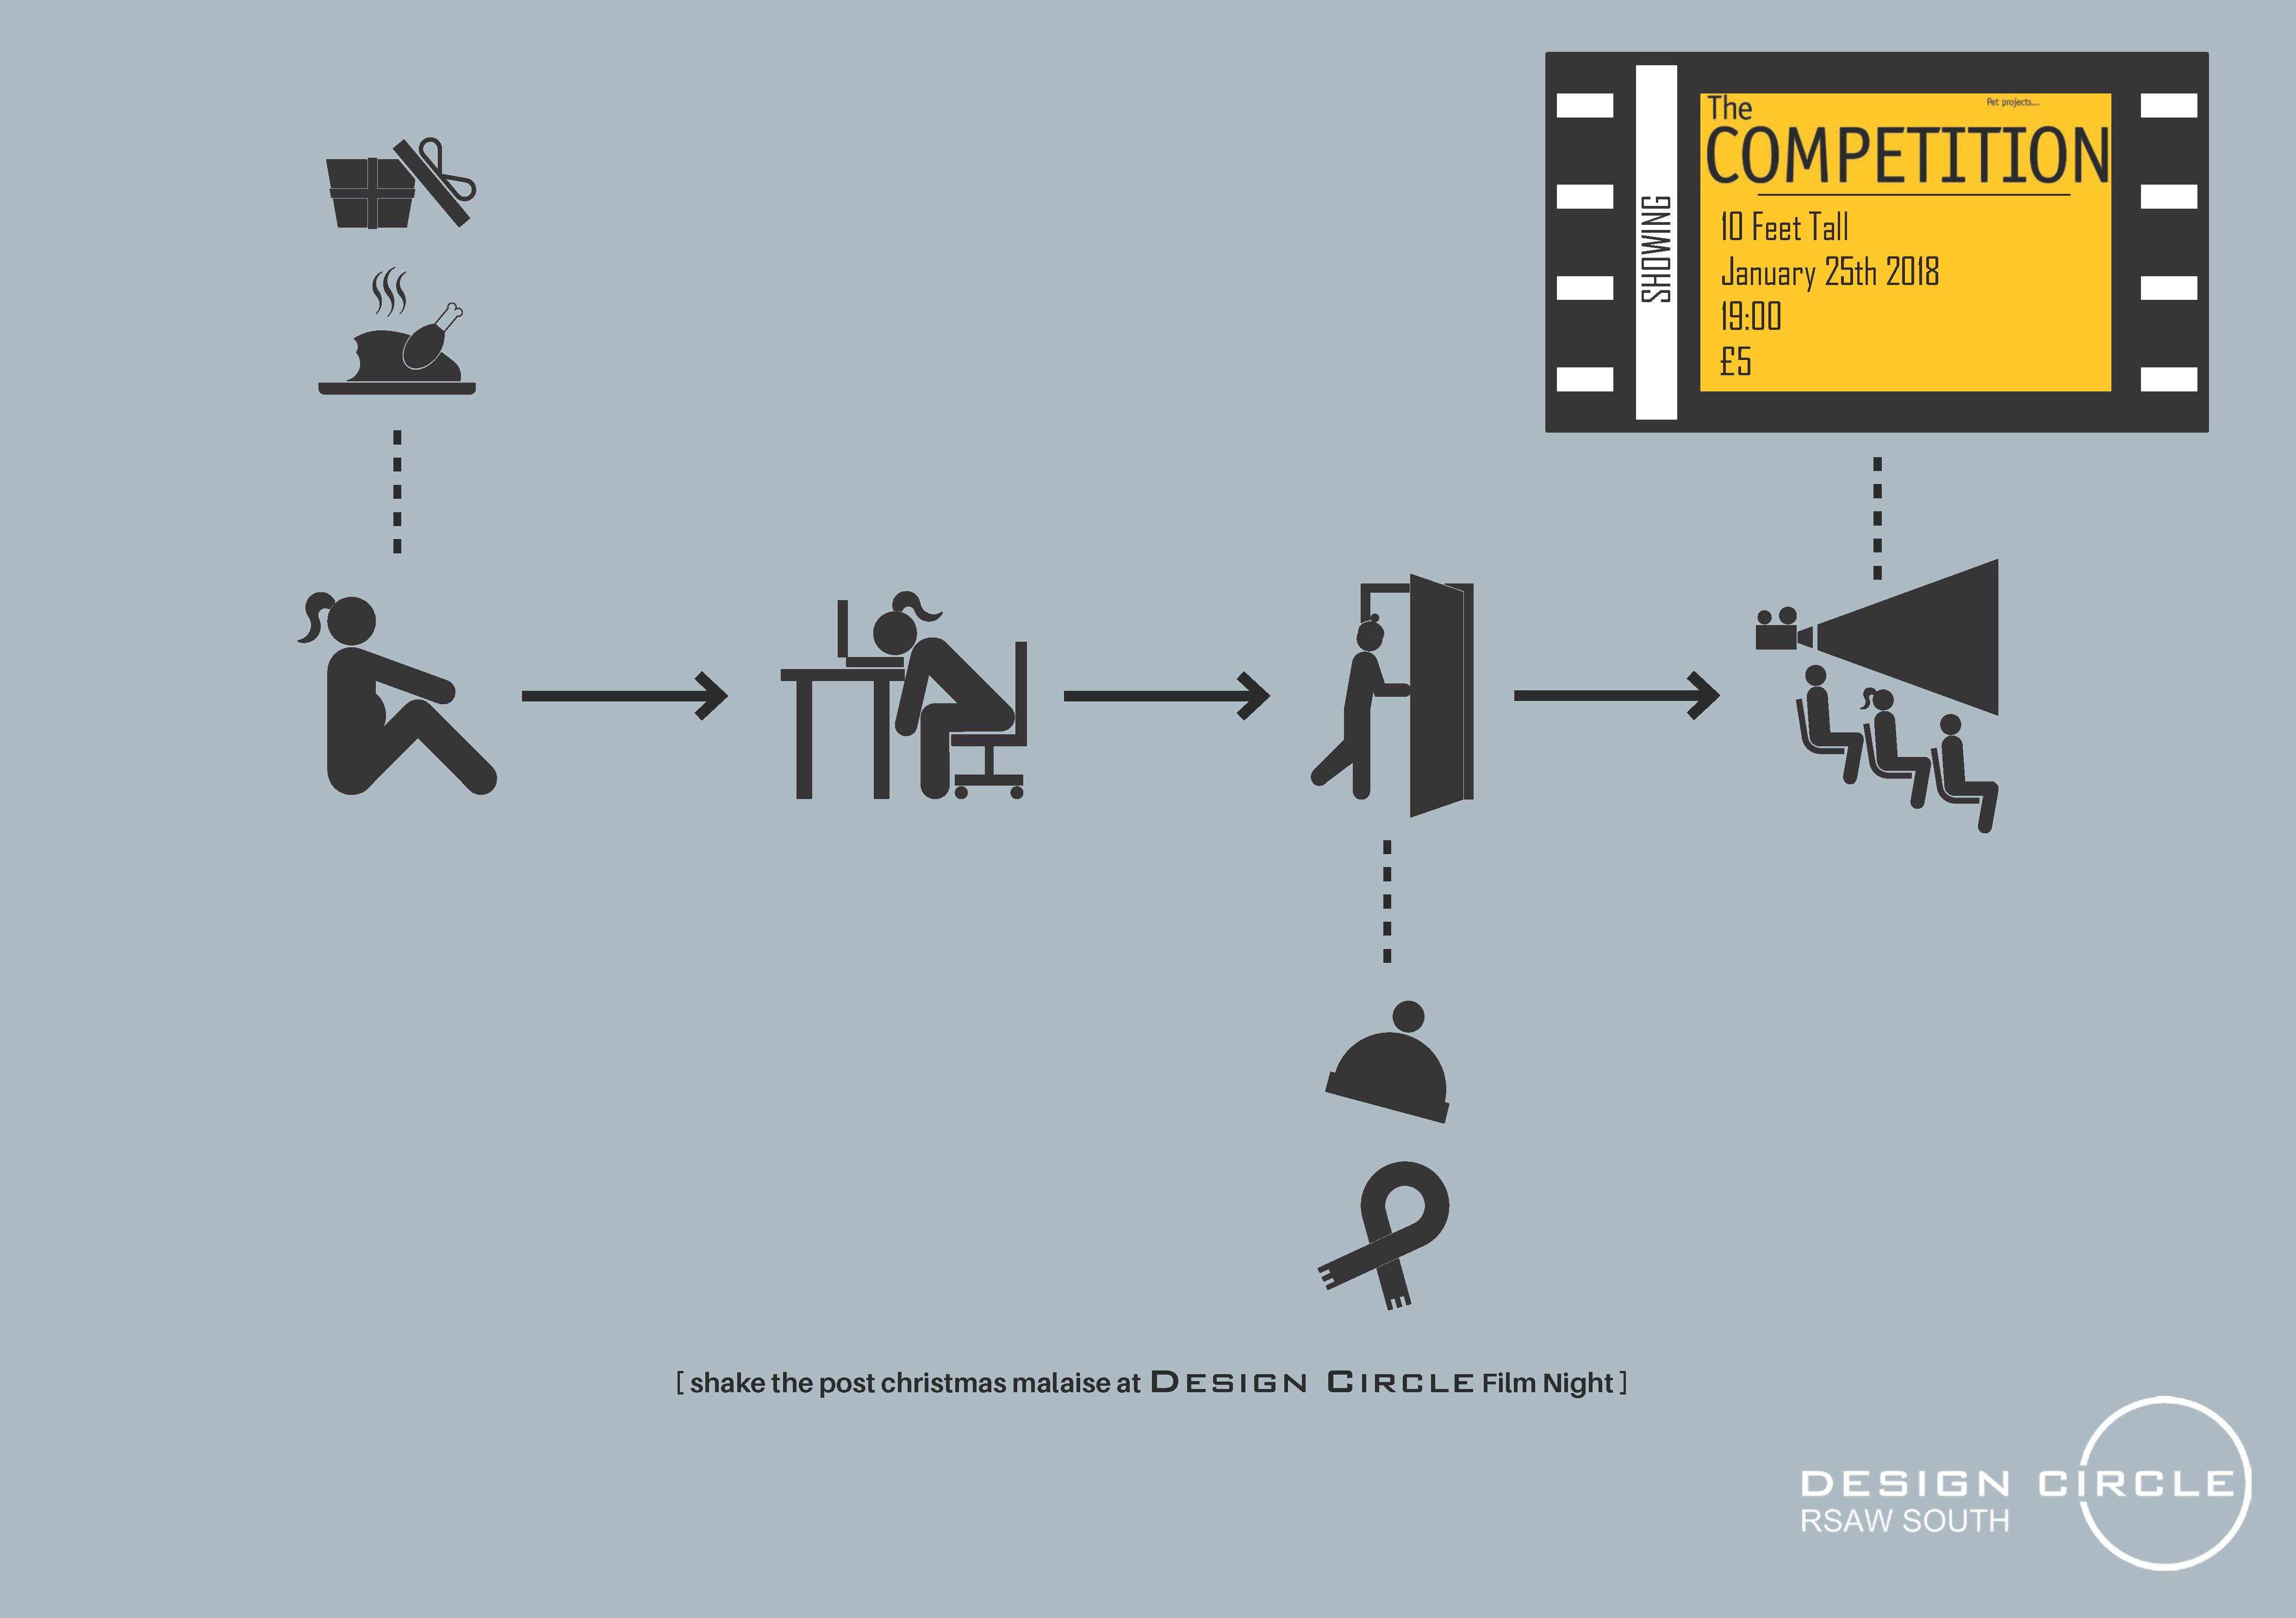 Film Night 2018 - The Competition